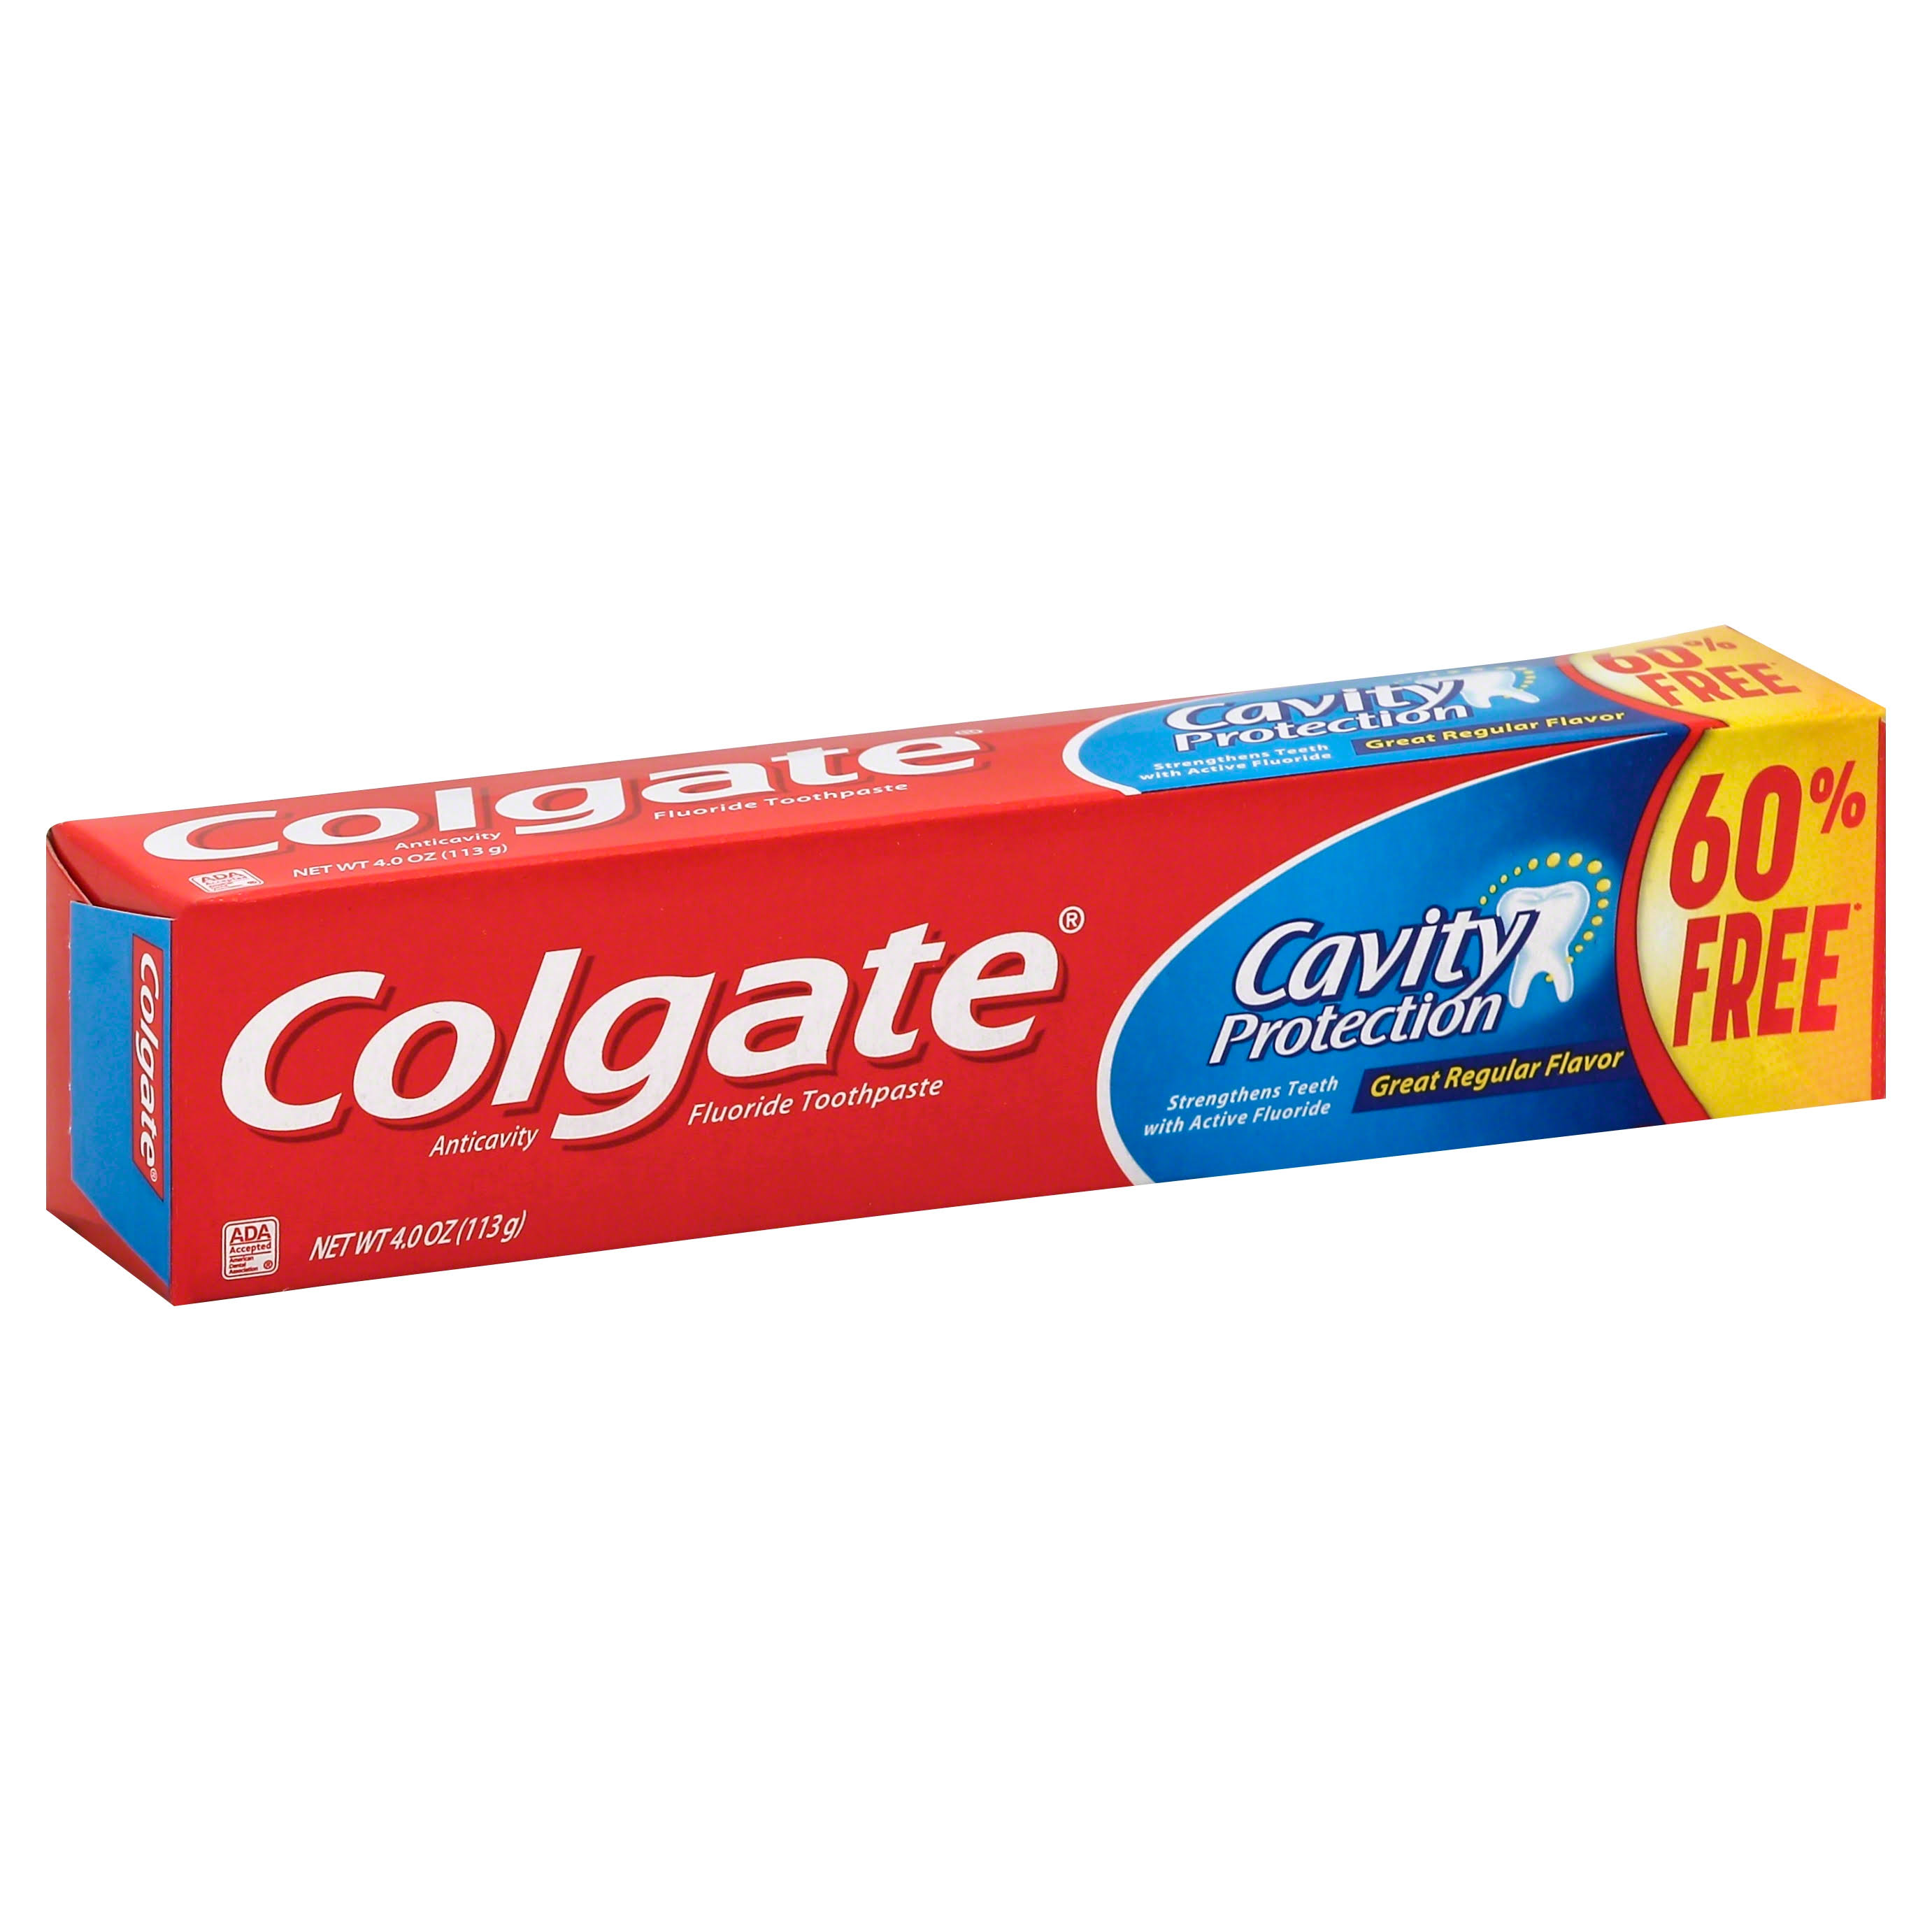 Colgate Cavity Protection Toothpaste - 4.0oz